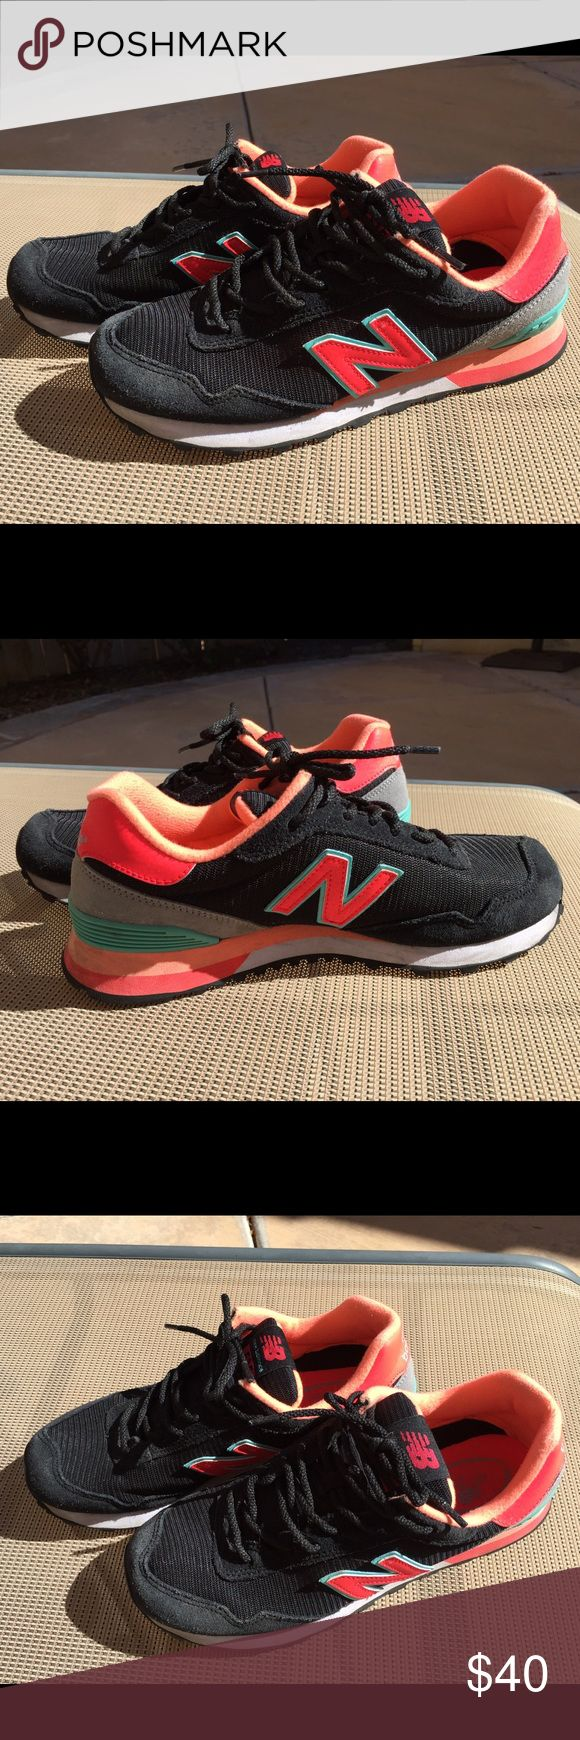 New Balance shoes Women's NB shoes New Balance Shoes Sneakers